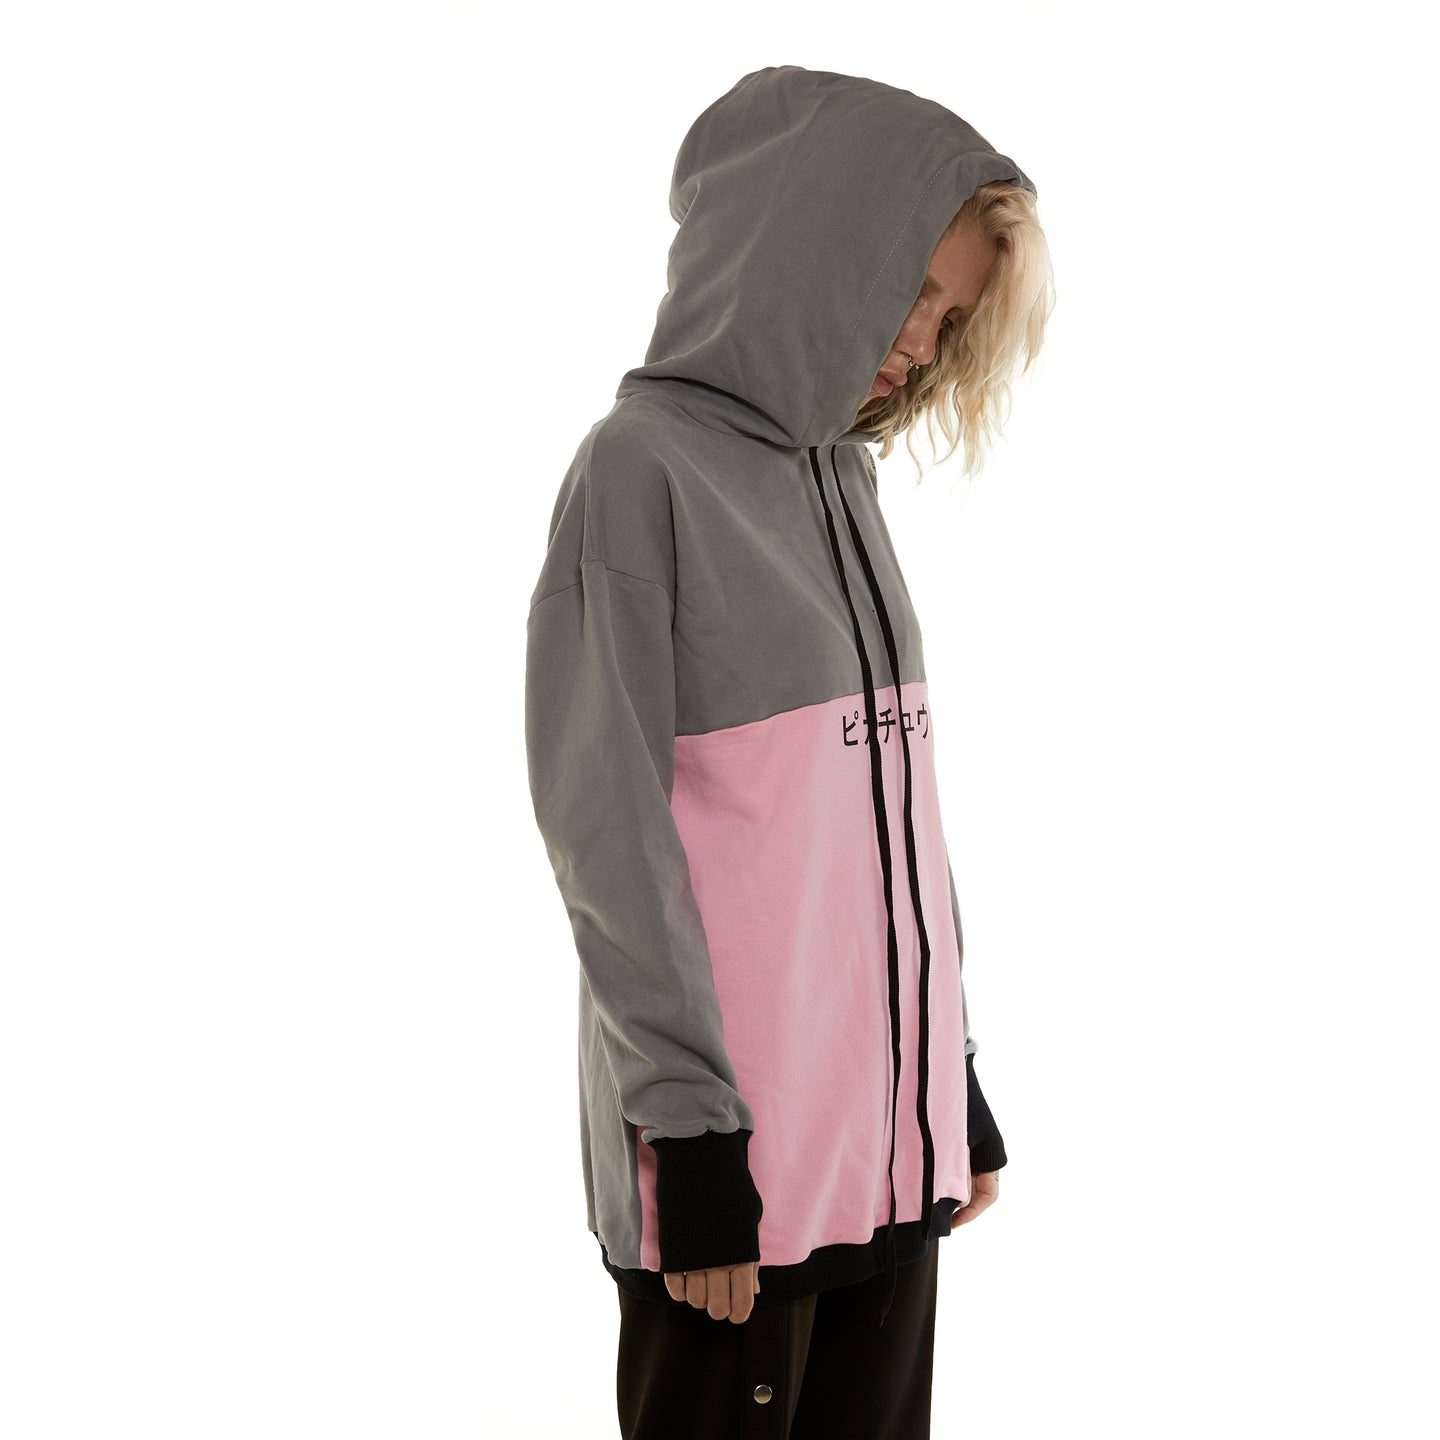 Pink/Gray Hoodie With print - krawaii.com